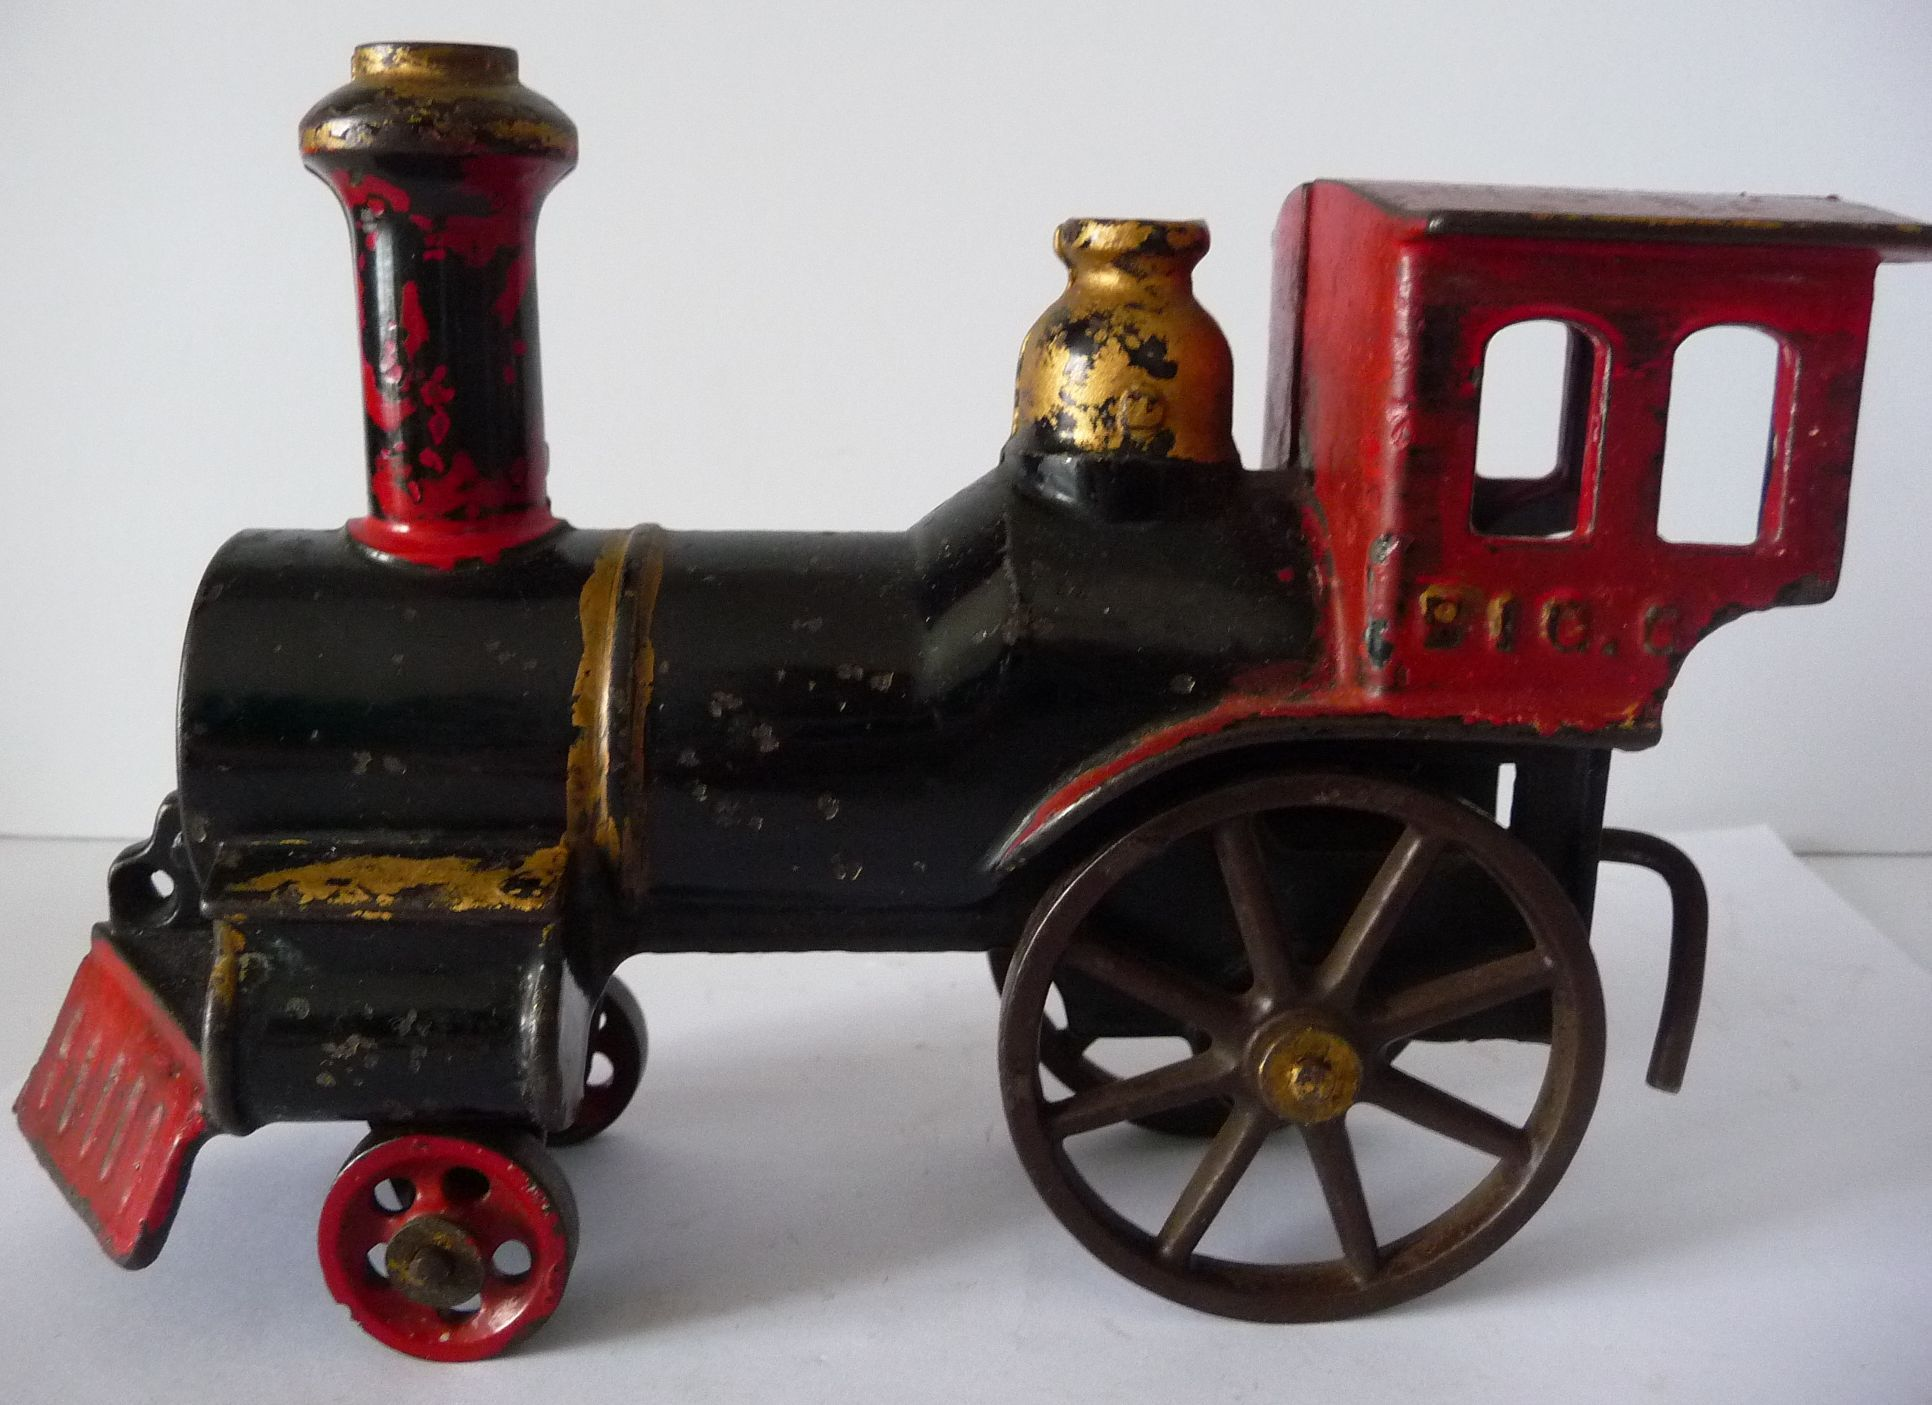 Nycrr Cast Iron Train: PAINTED CAST IRON CHILDS TOY TRAIN 'BIG 6' ENGINE